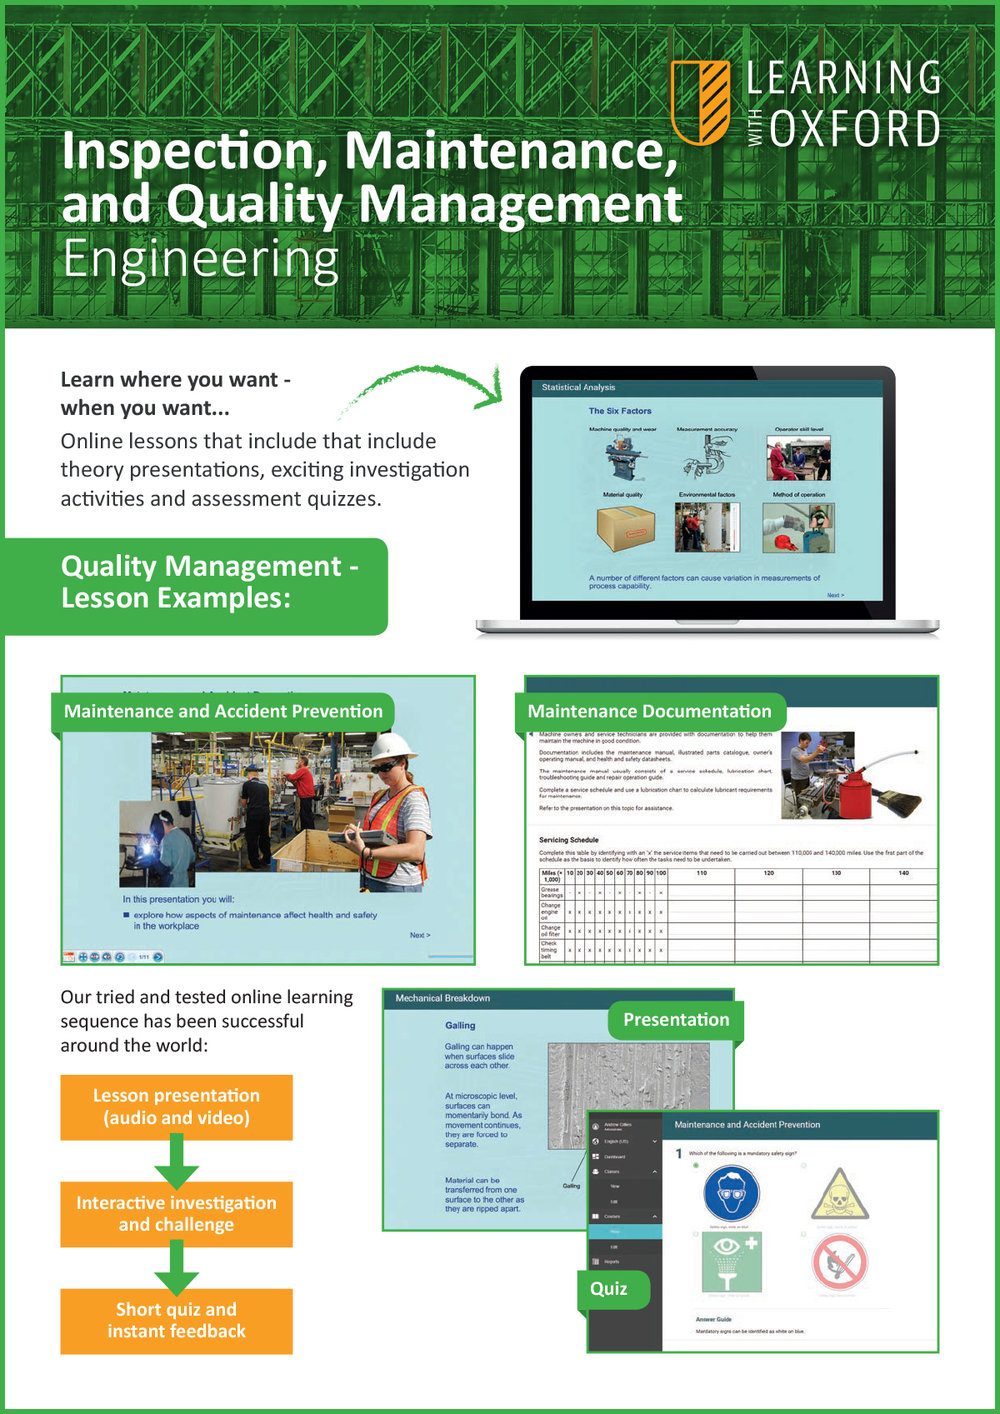 What lesson topics are covered with the licence? - Take a look at our Inspection, Maintenance and Quality Management InfoSheet to see a full topic listing.